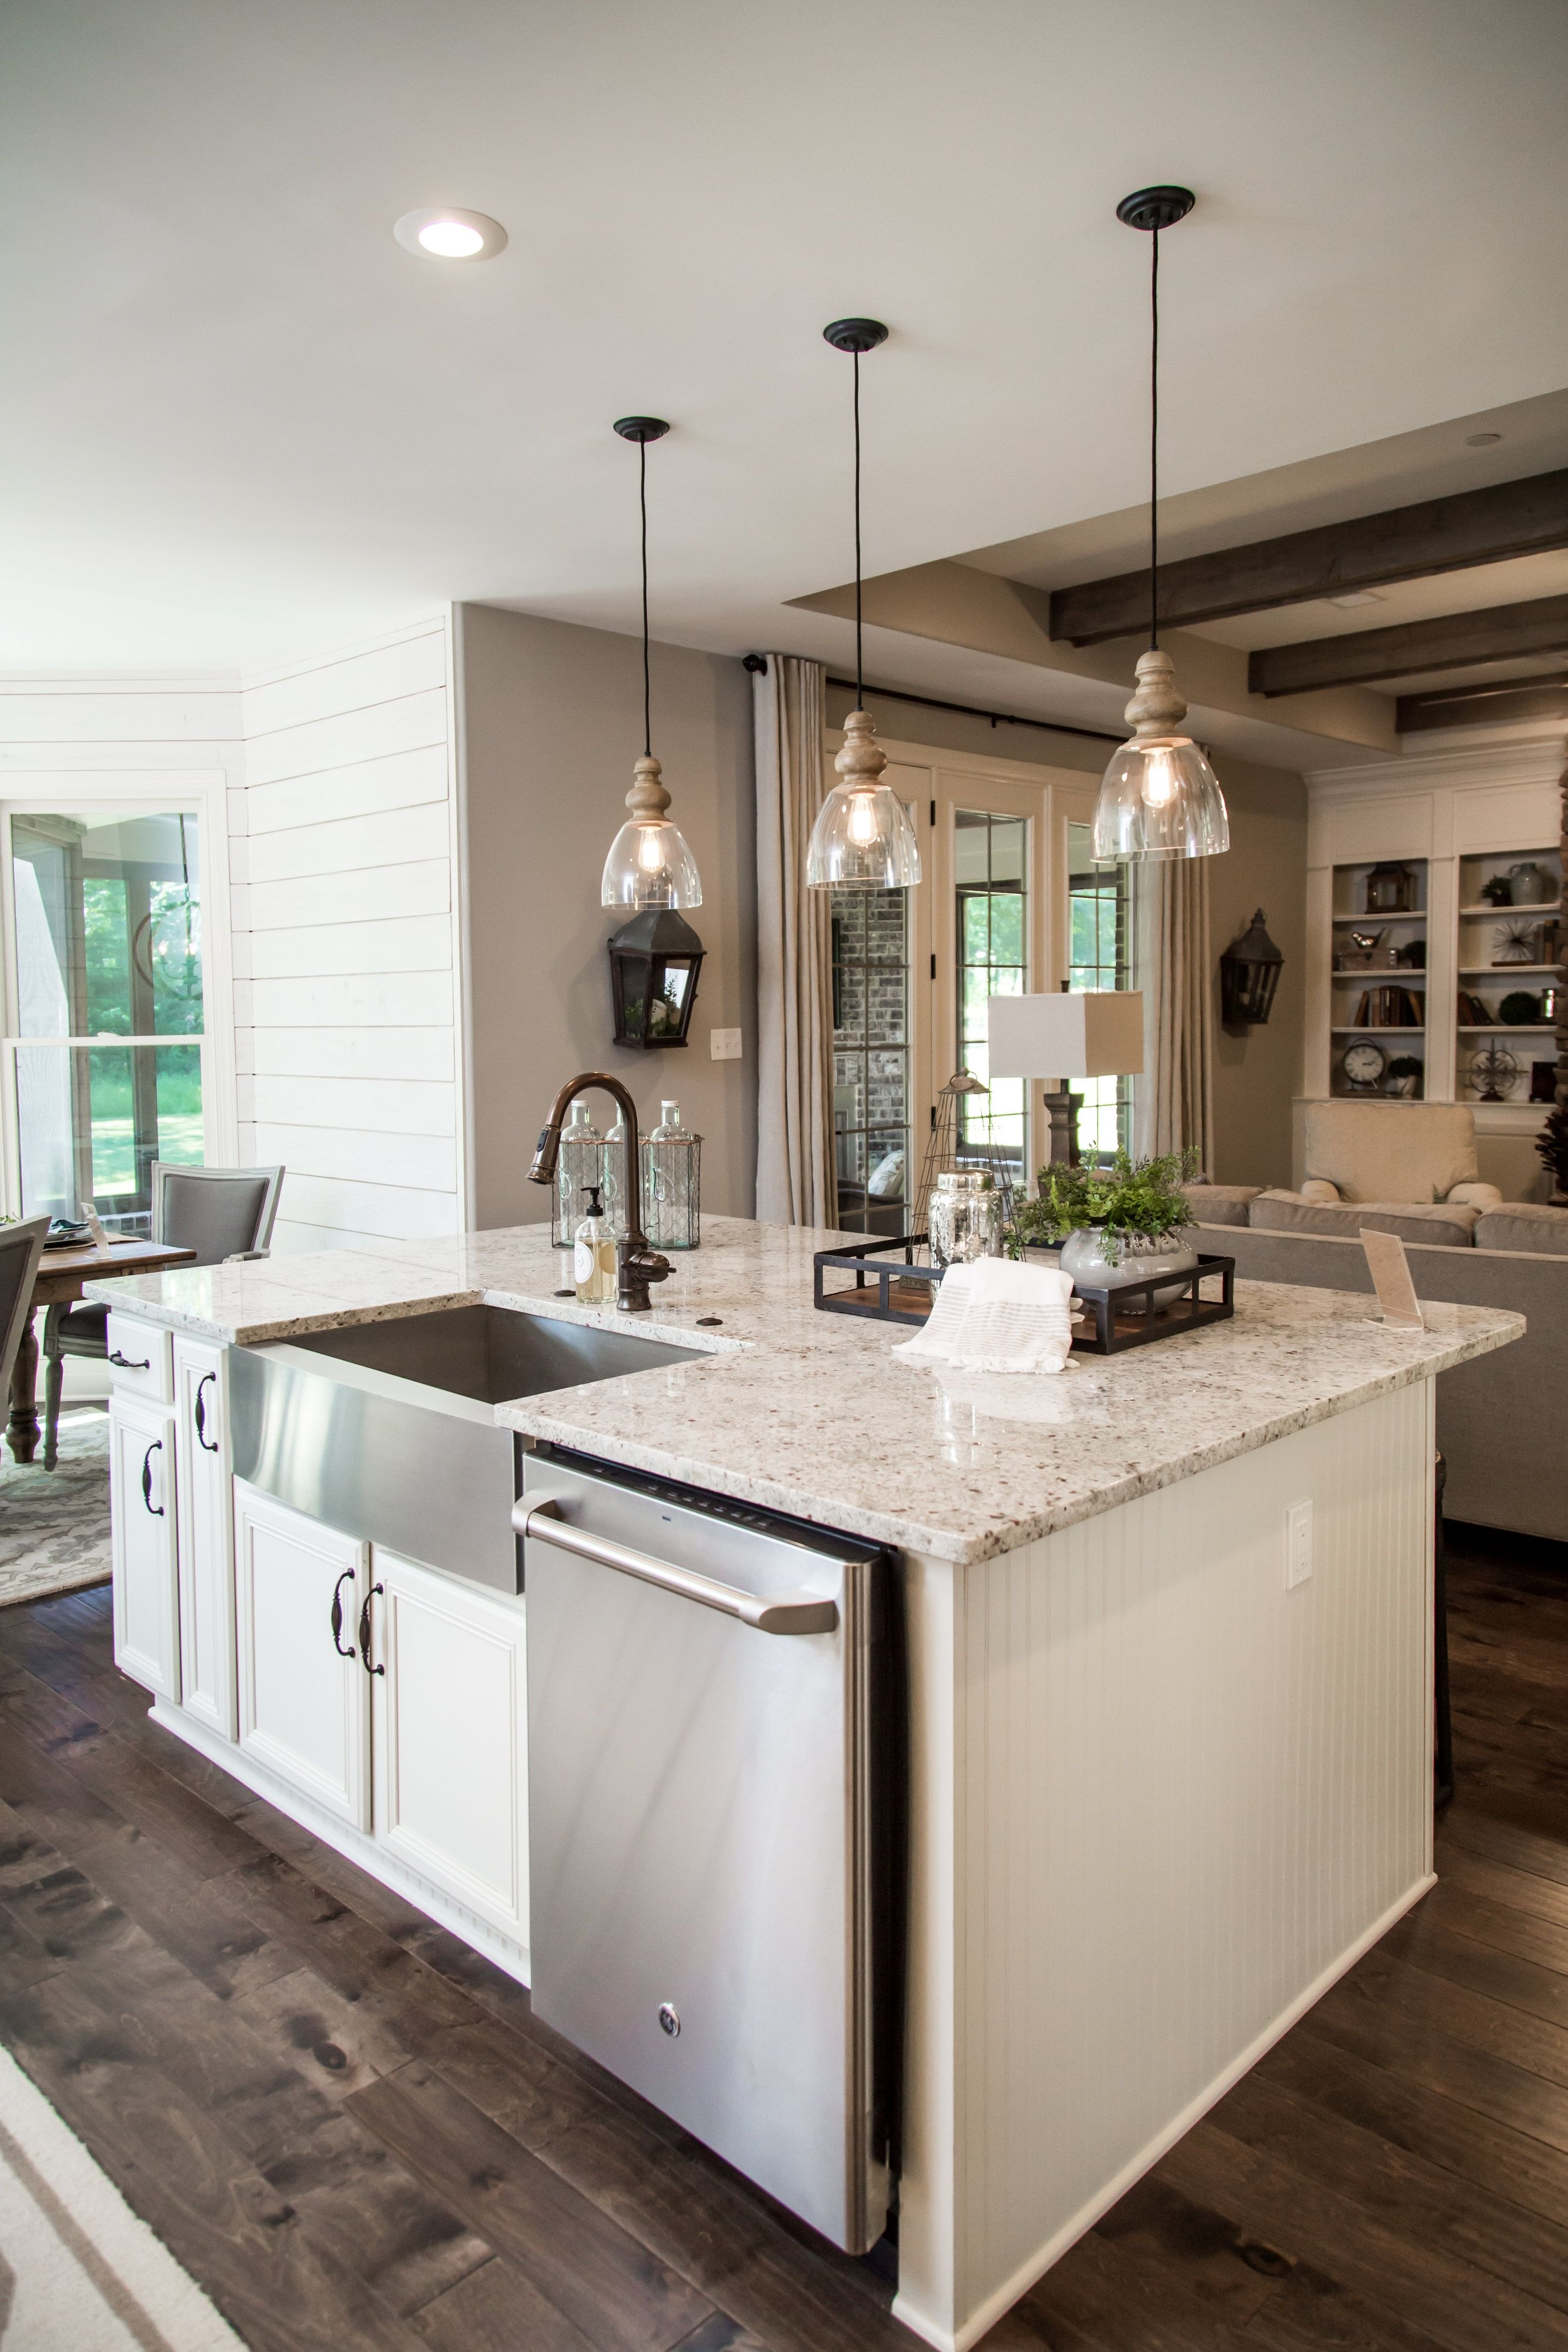 Photo Galleries Regency Homebuilders New Homes In Memphis Tn House Design Kitchen Regency House Building A House